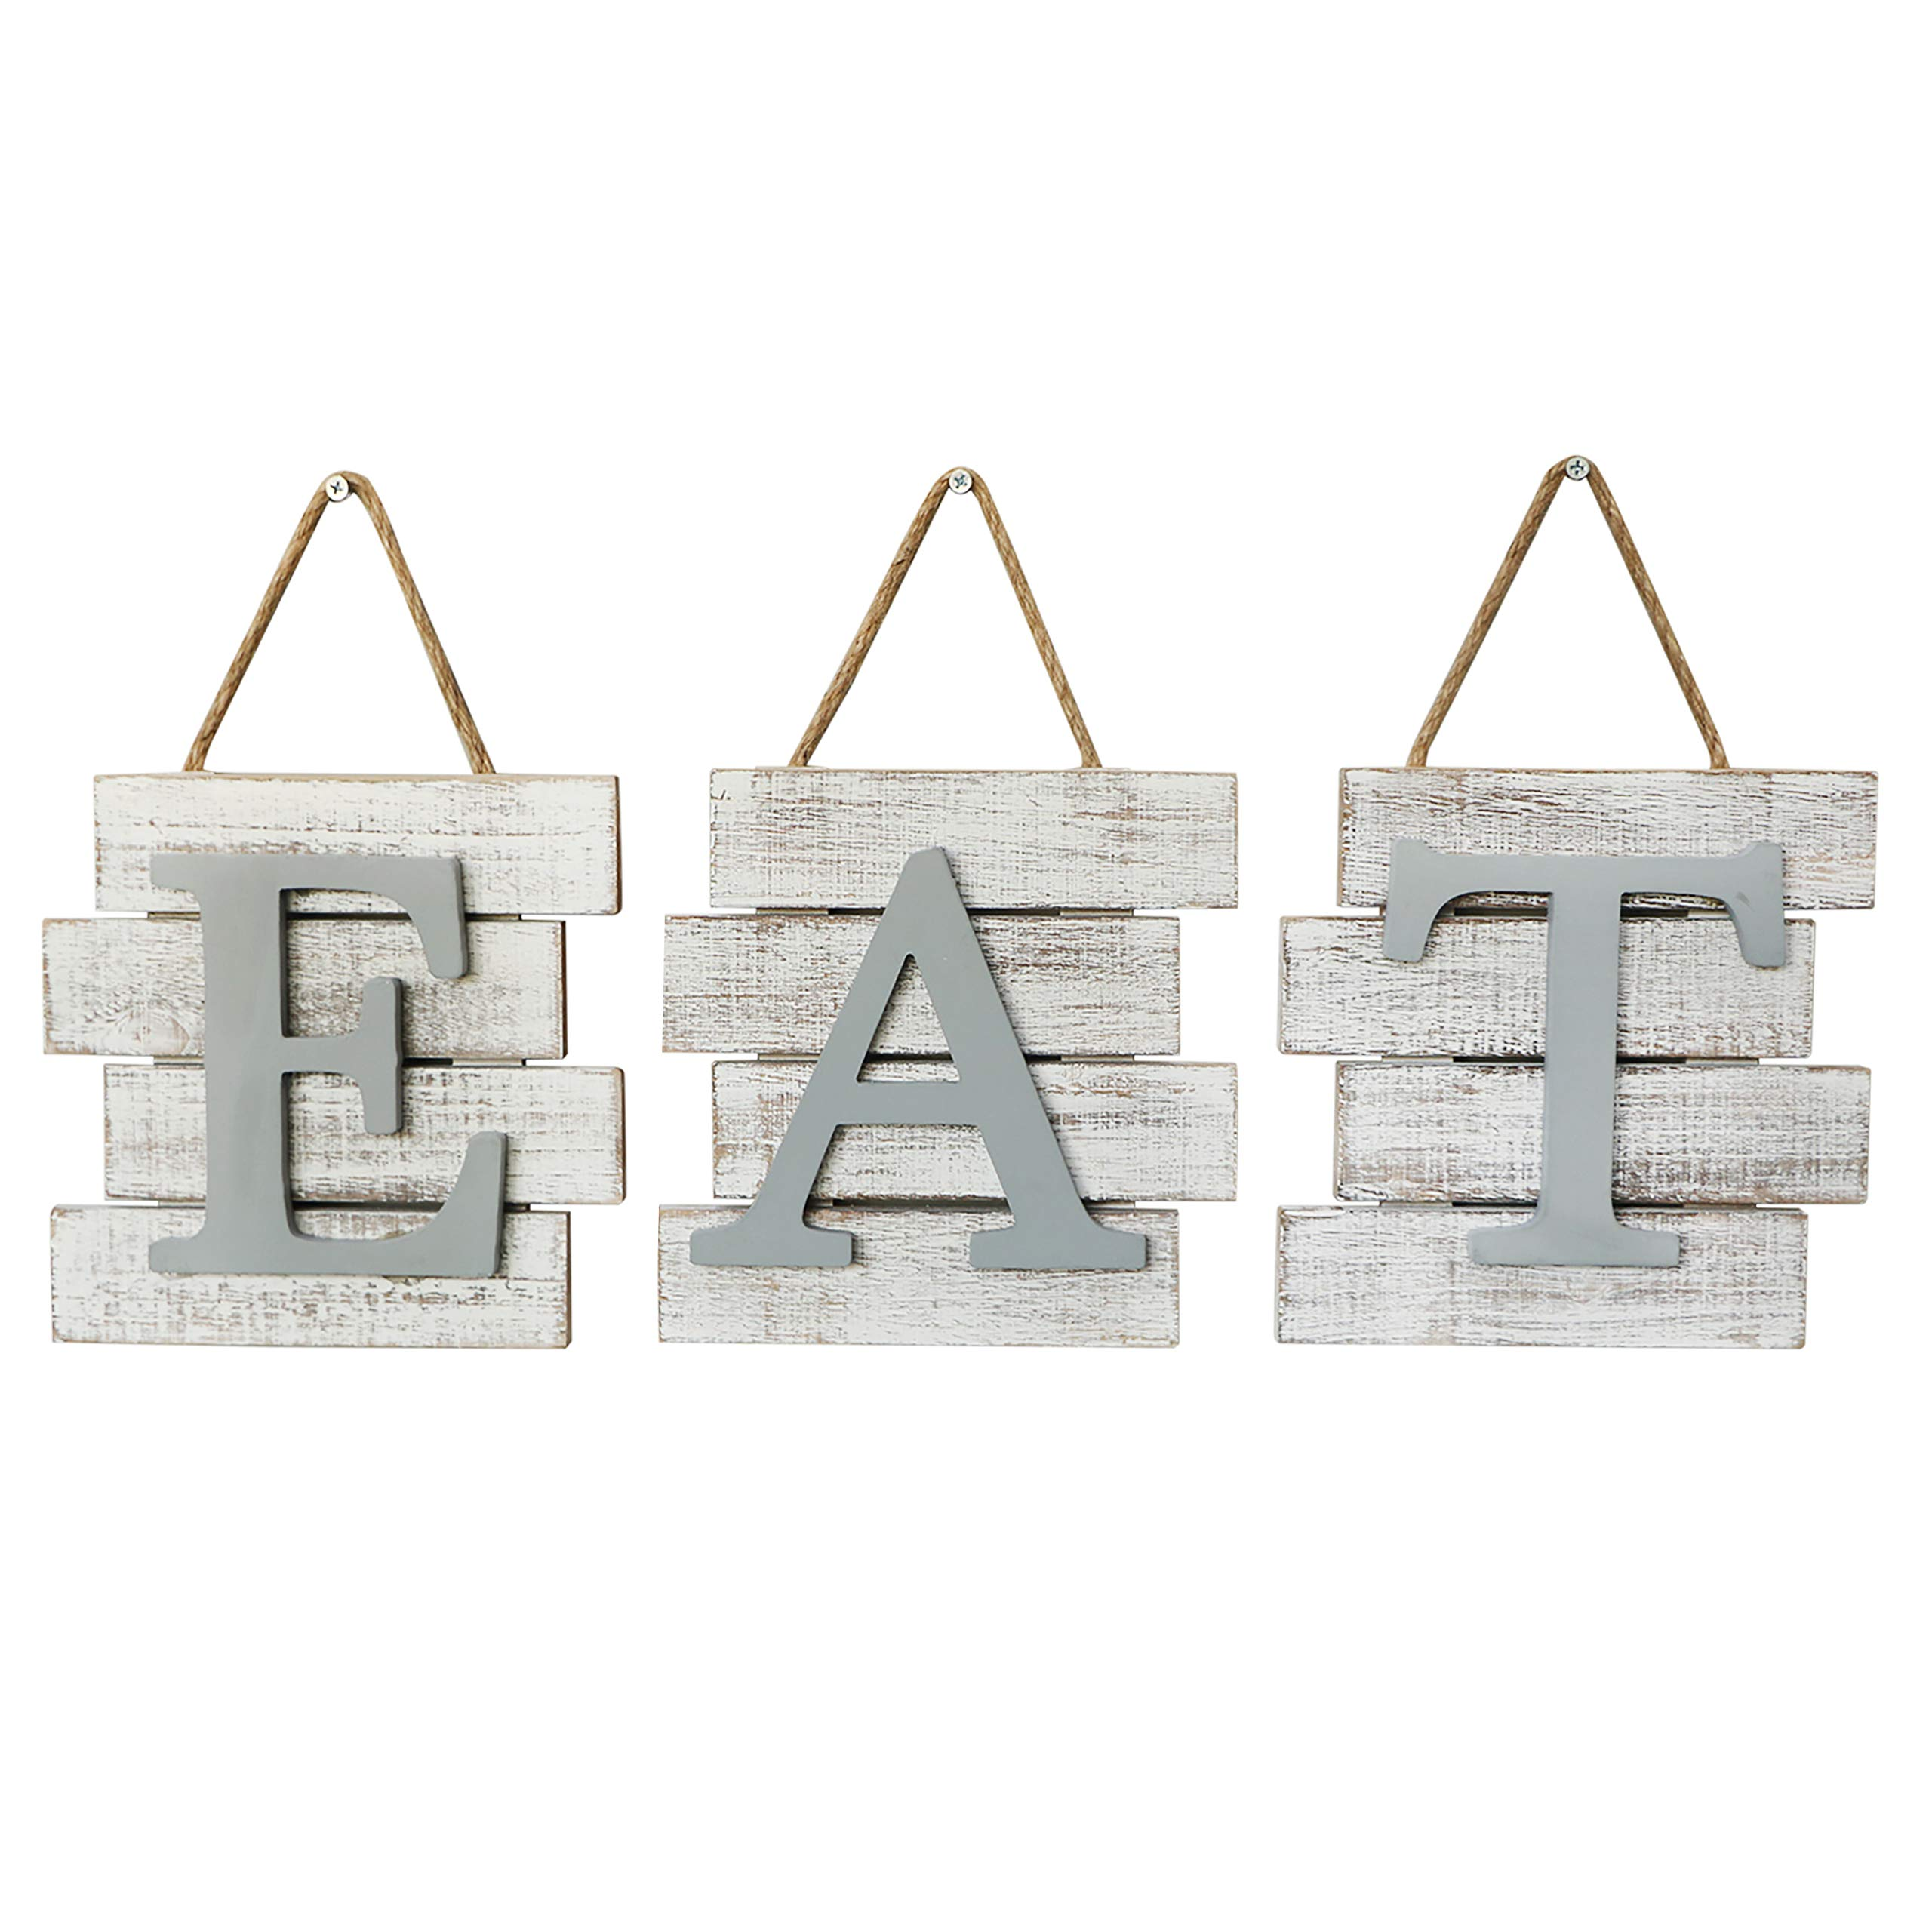 Barnyard Designs Eat Sign Wall Decor for Kitchen and Home, Distressed White, Rustic Farmhouse Country Decorative Wall Art 24'' x 8'' by Barnyard Designs